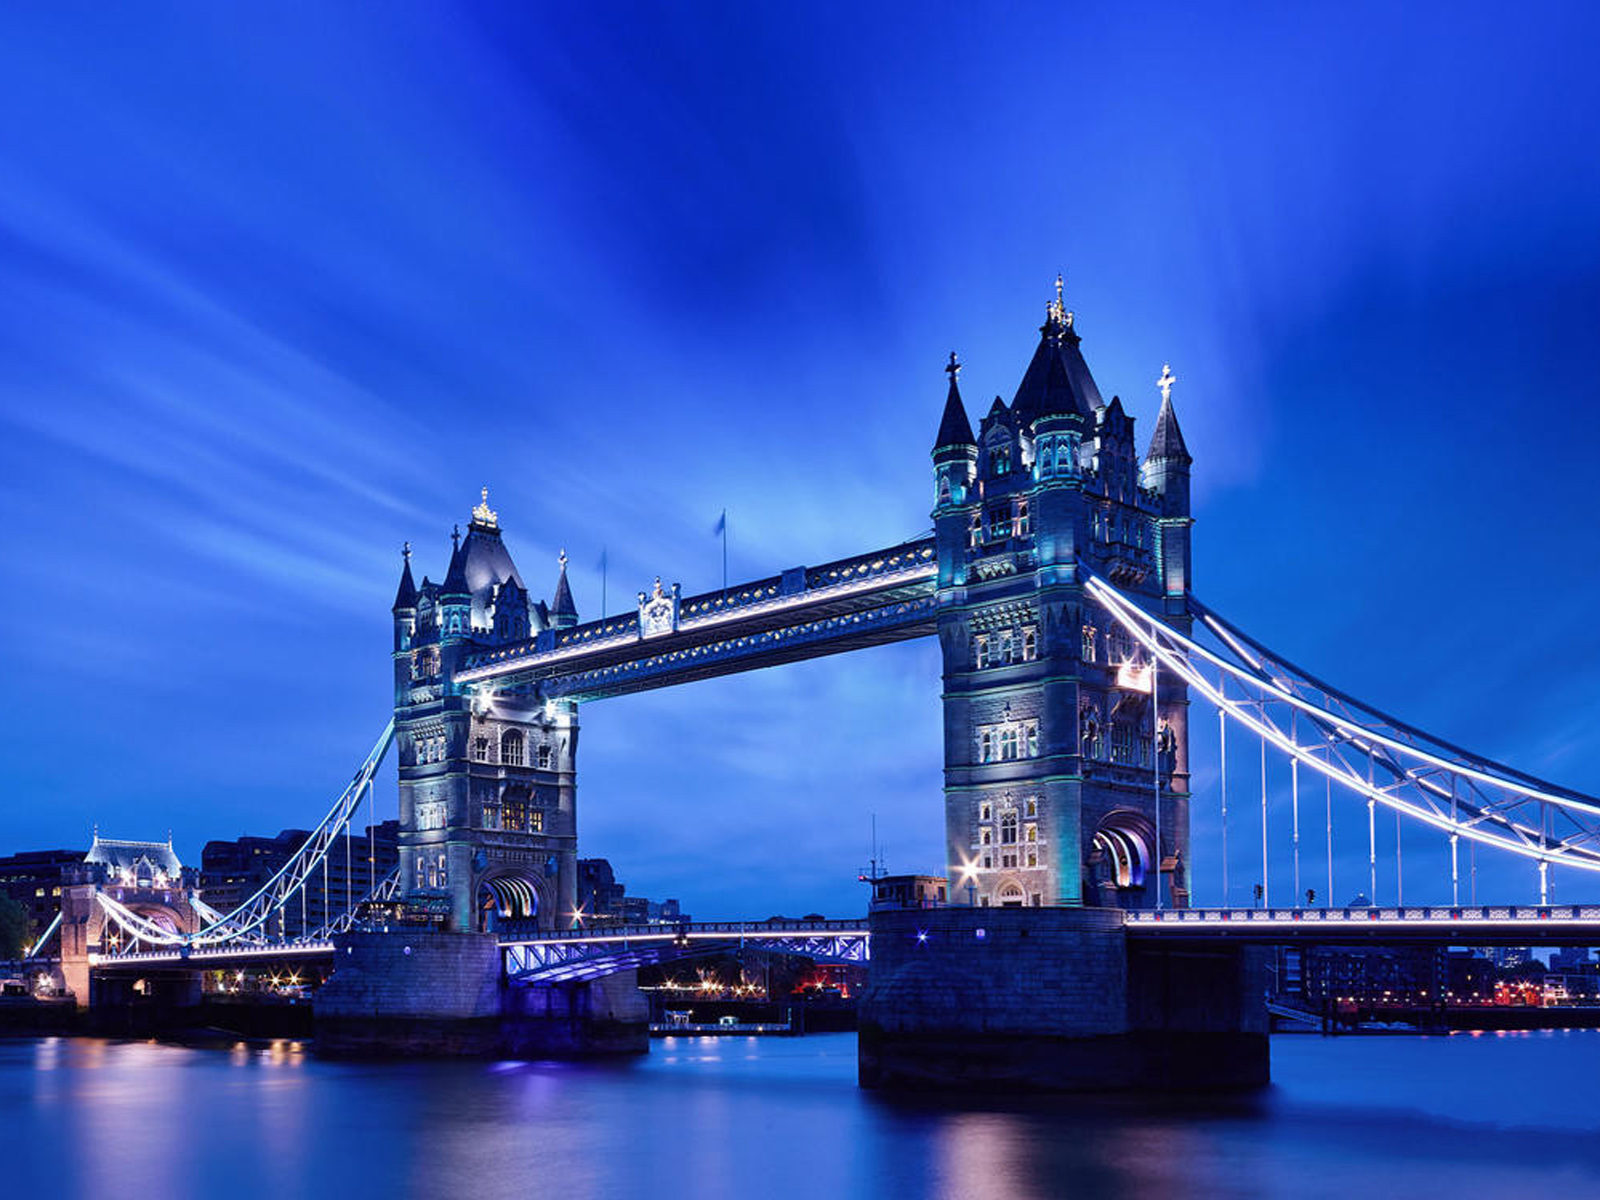 New Hd Wallpapers For Pc Free Download Tower Bridge At Night Uk Desktop Wallpaper Hd 1920x1200